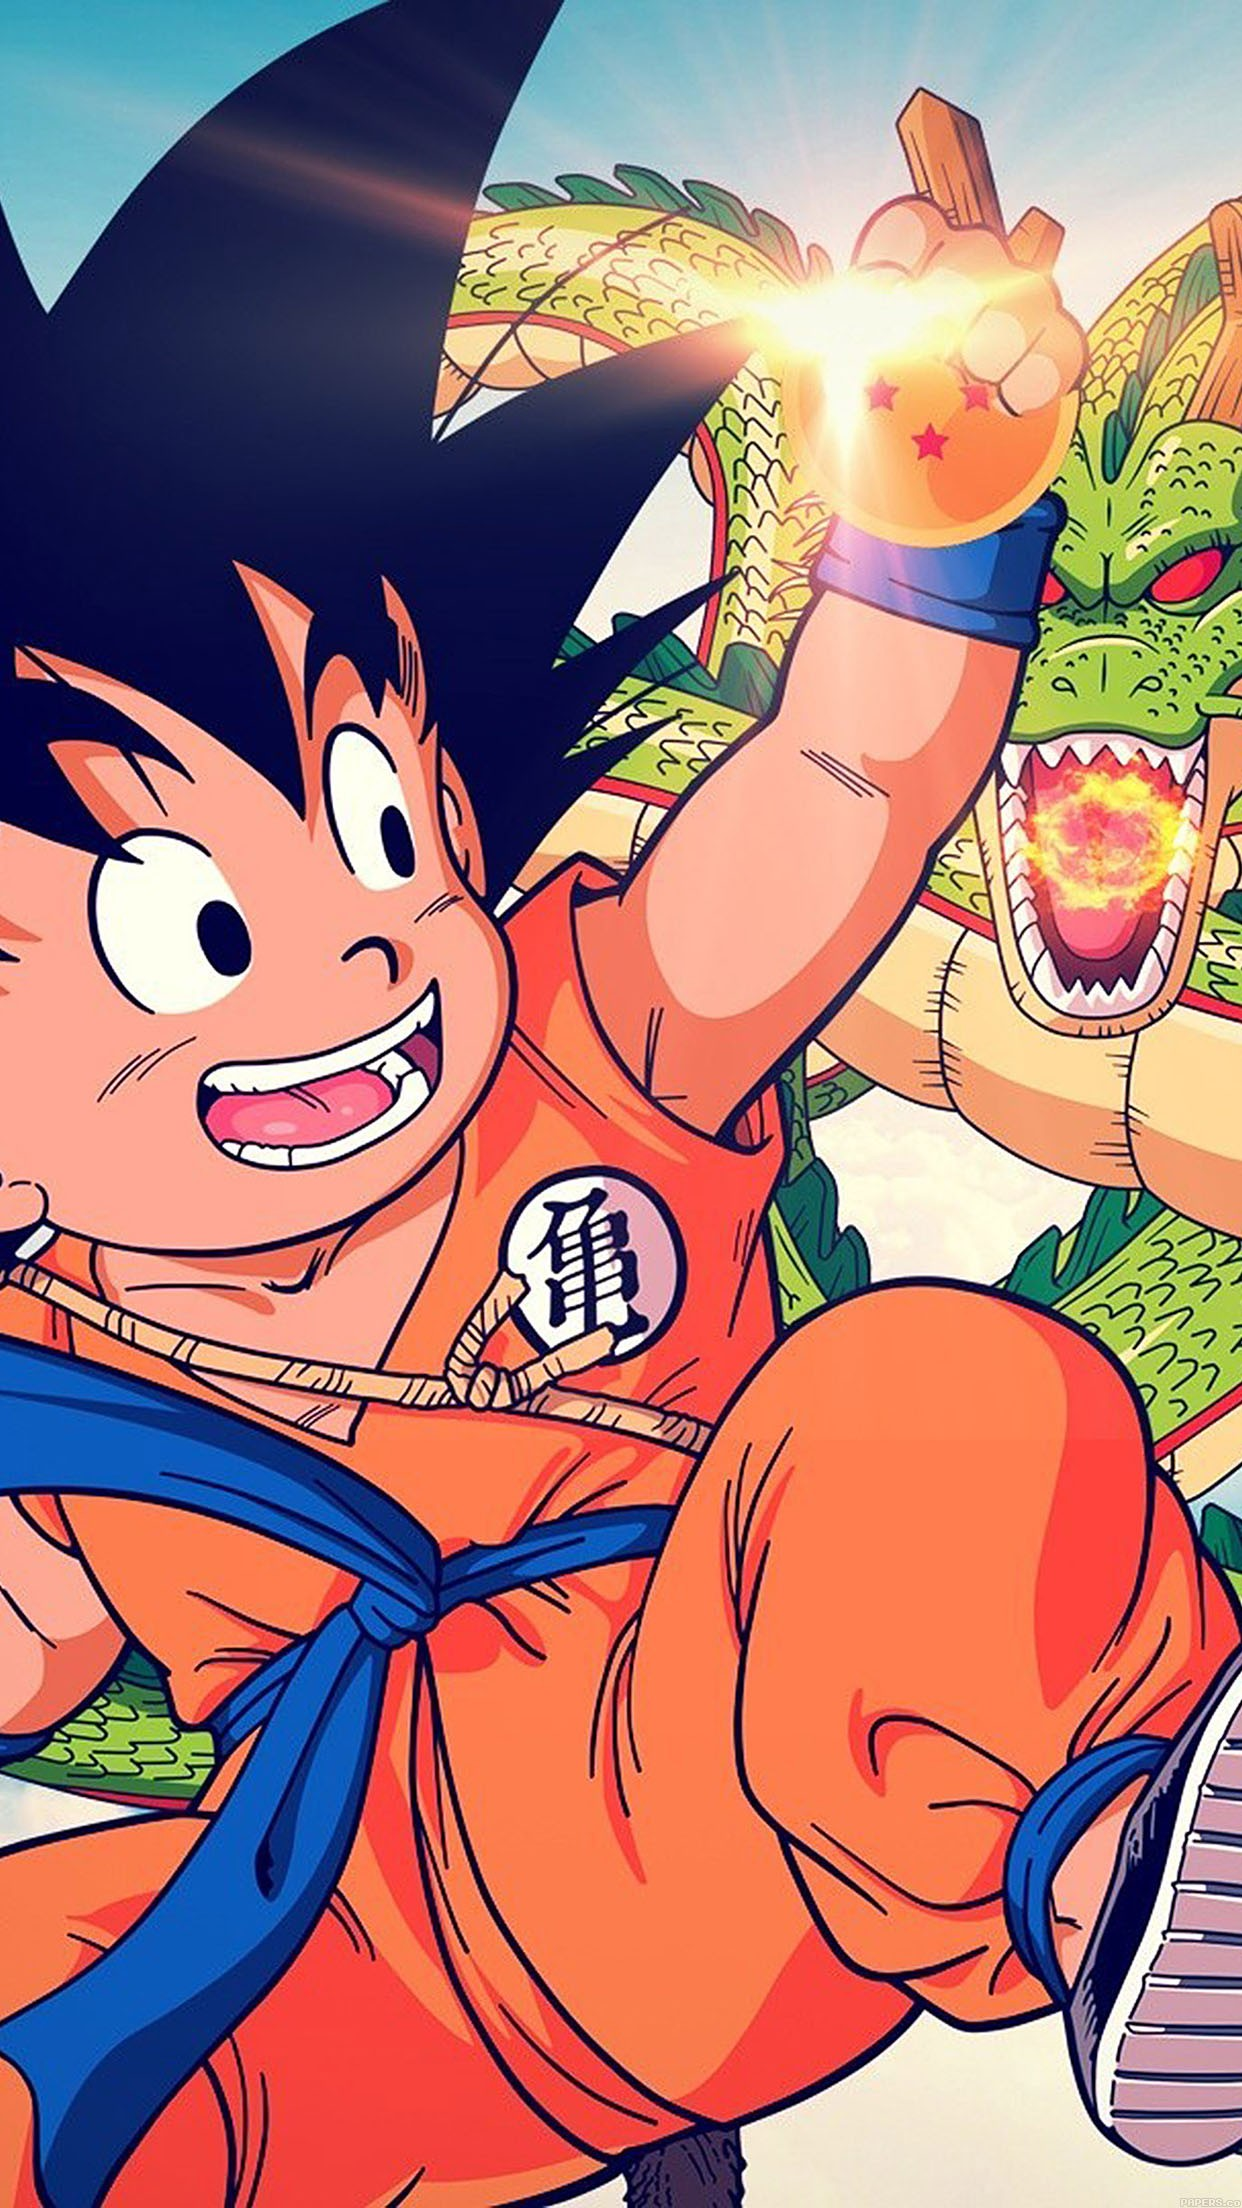 dragon ball goku shenron wallpaper for iphone x 8 7 6 free download on 3wallpapers. Black Bedroom Furniture Sets. Home Design Ideas